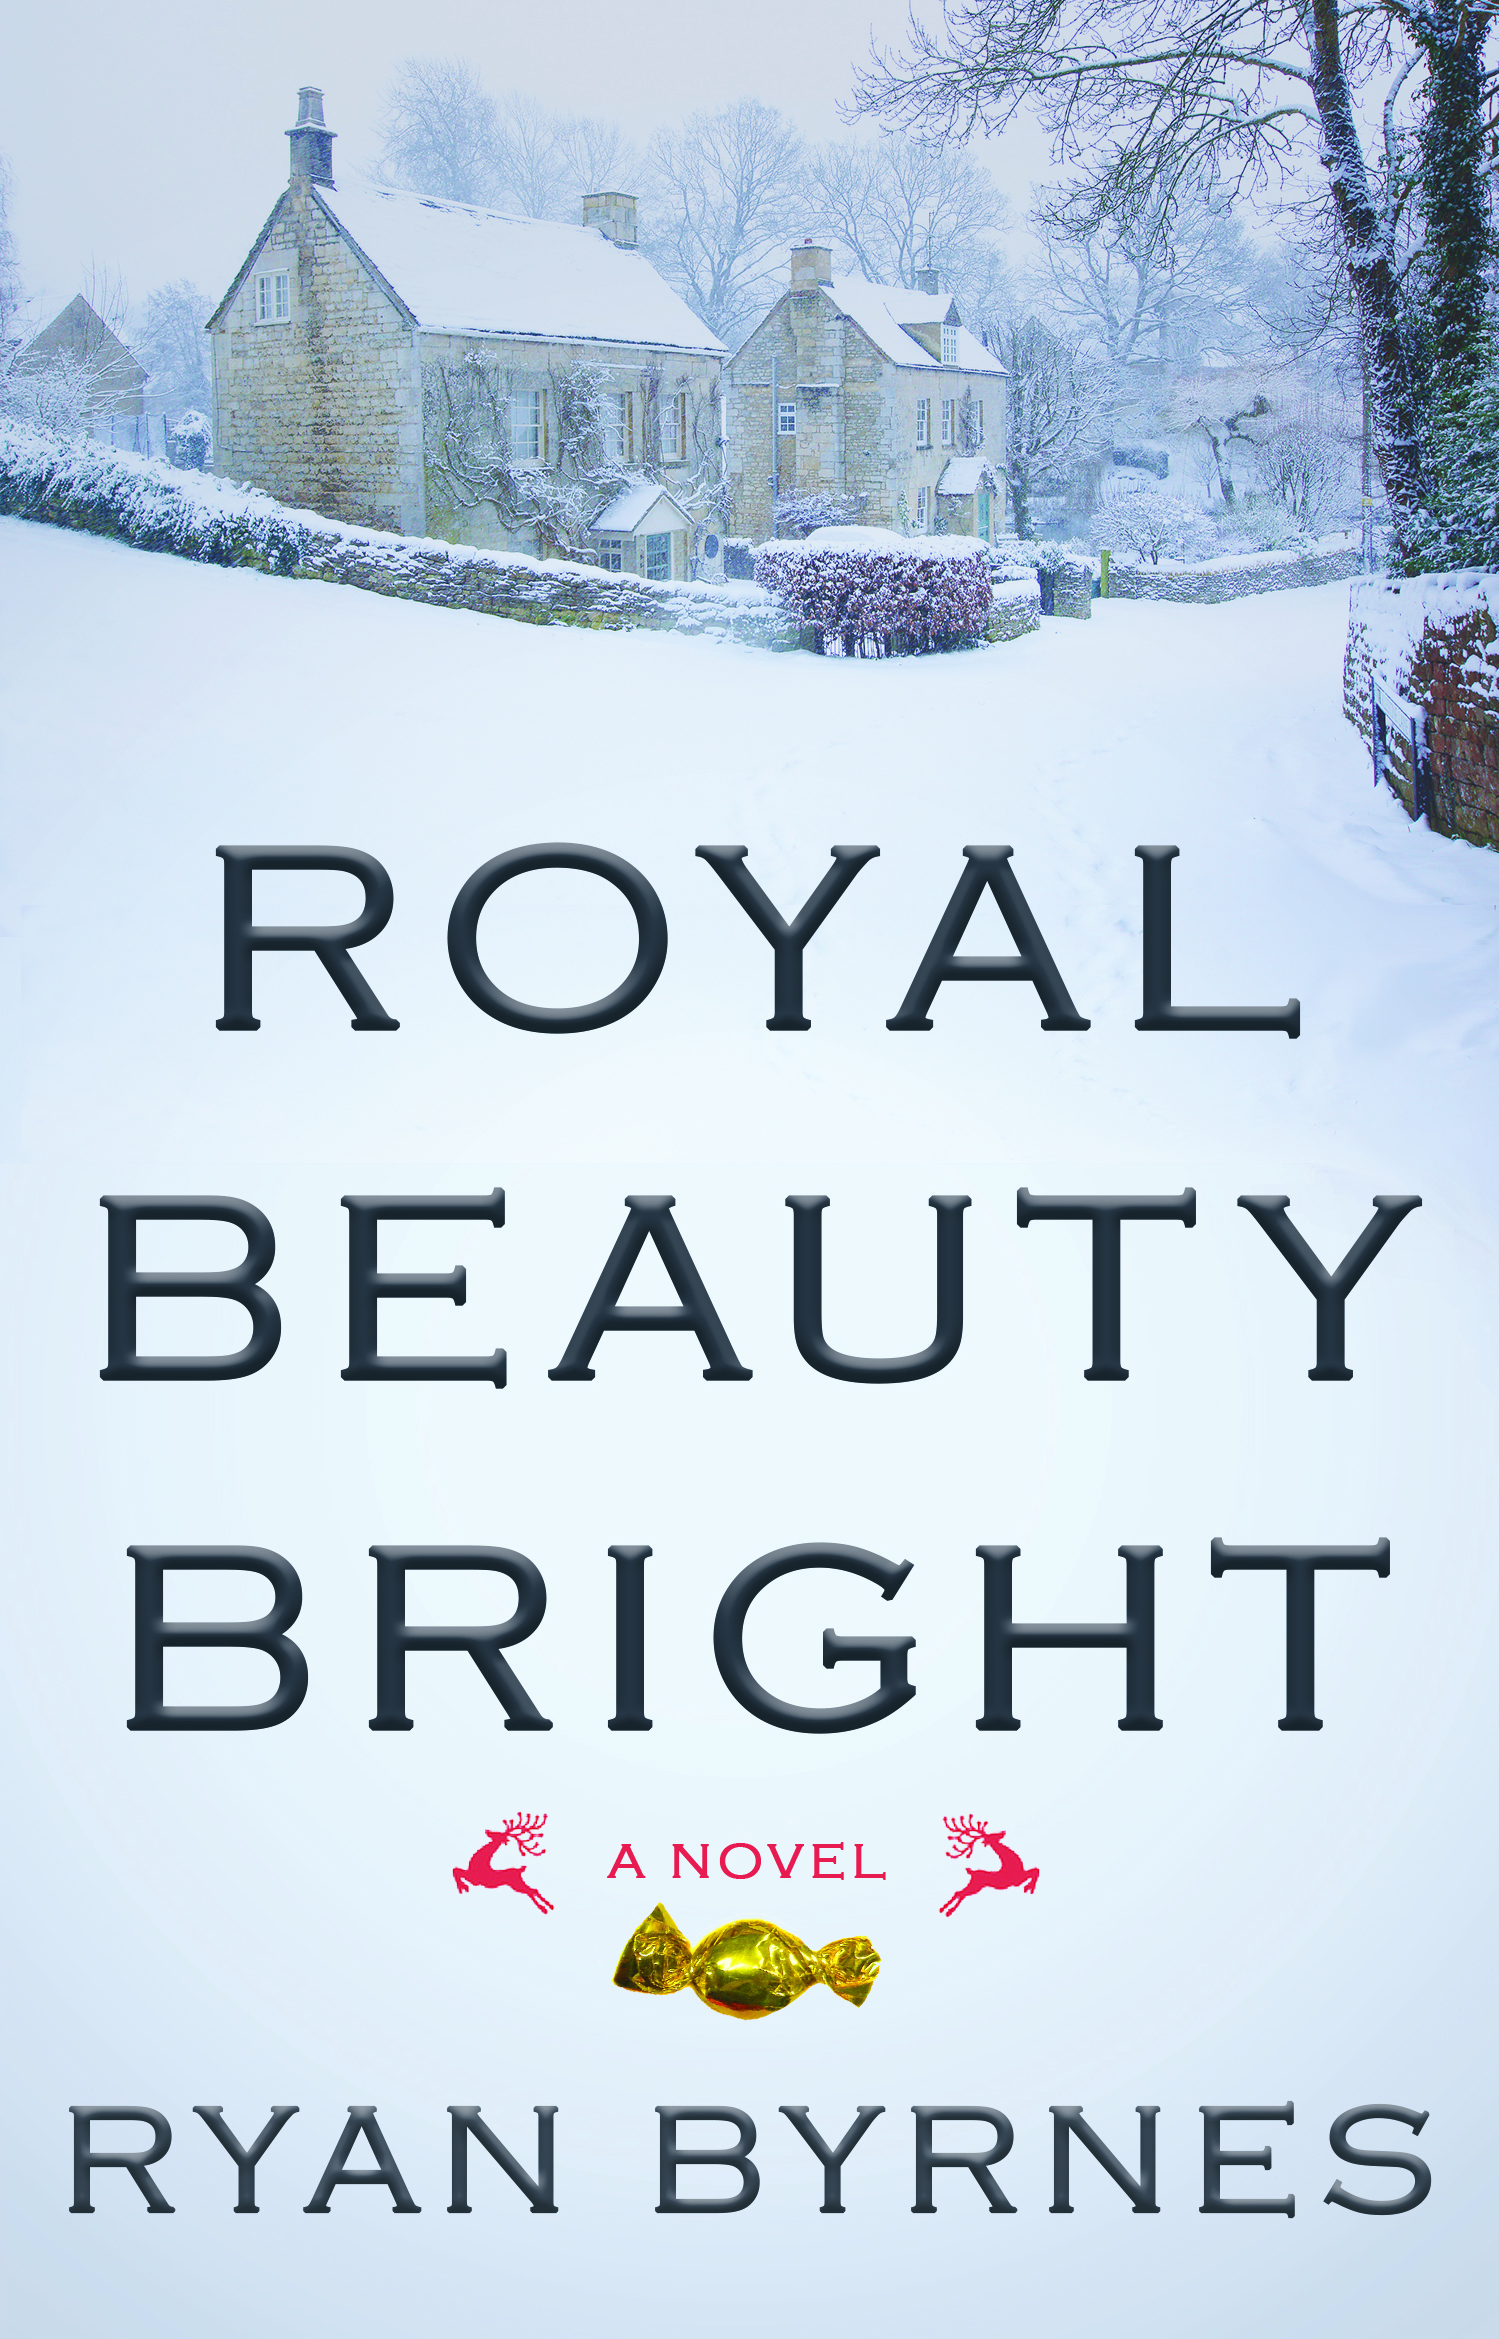 Royal Beauty Bright